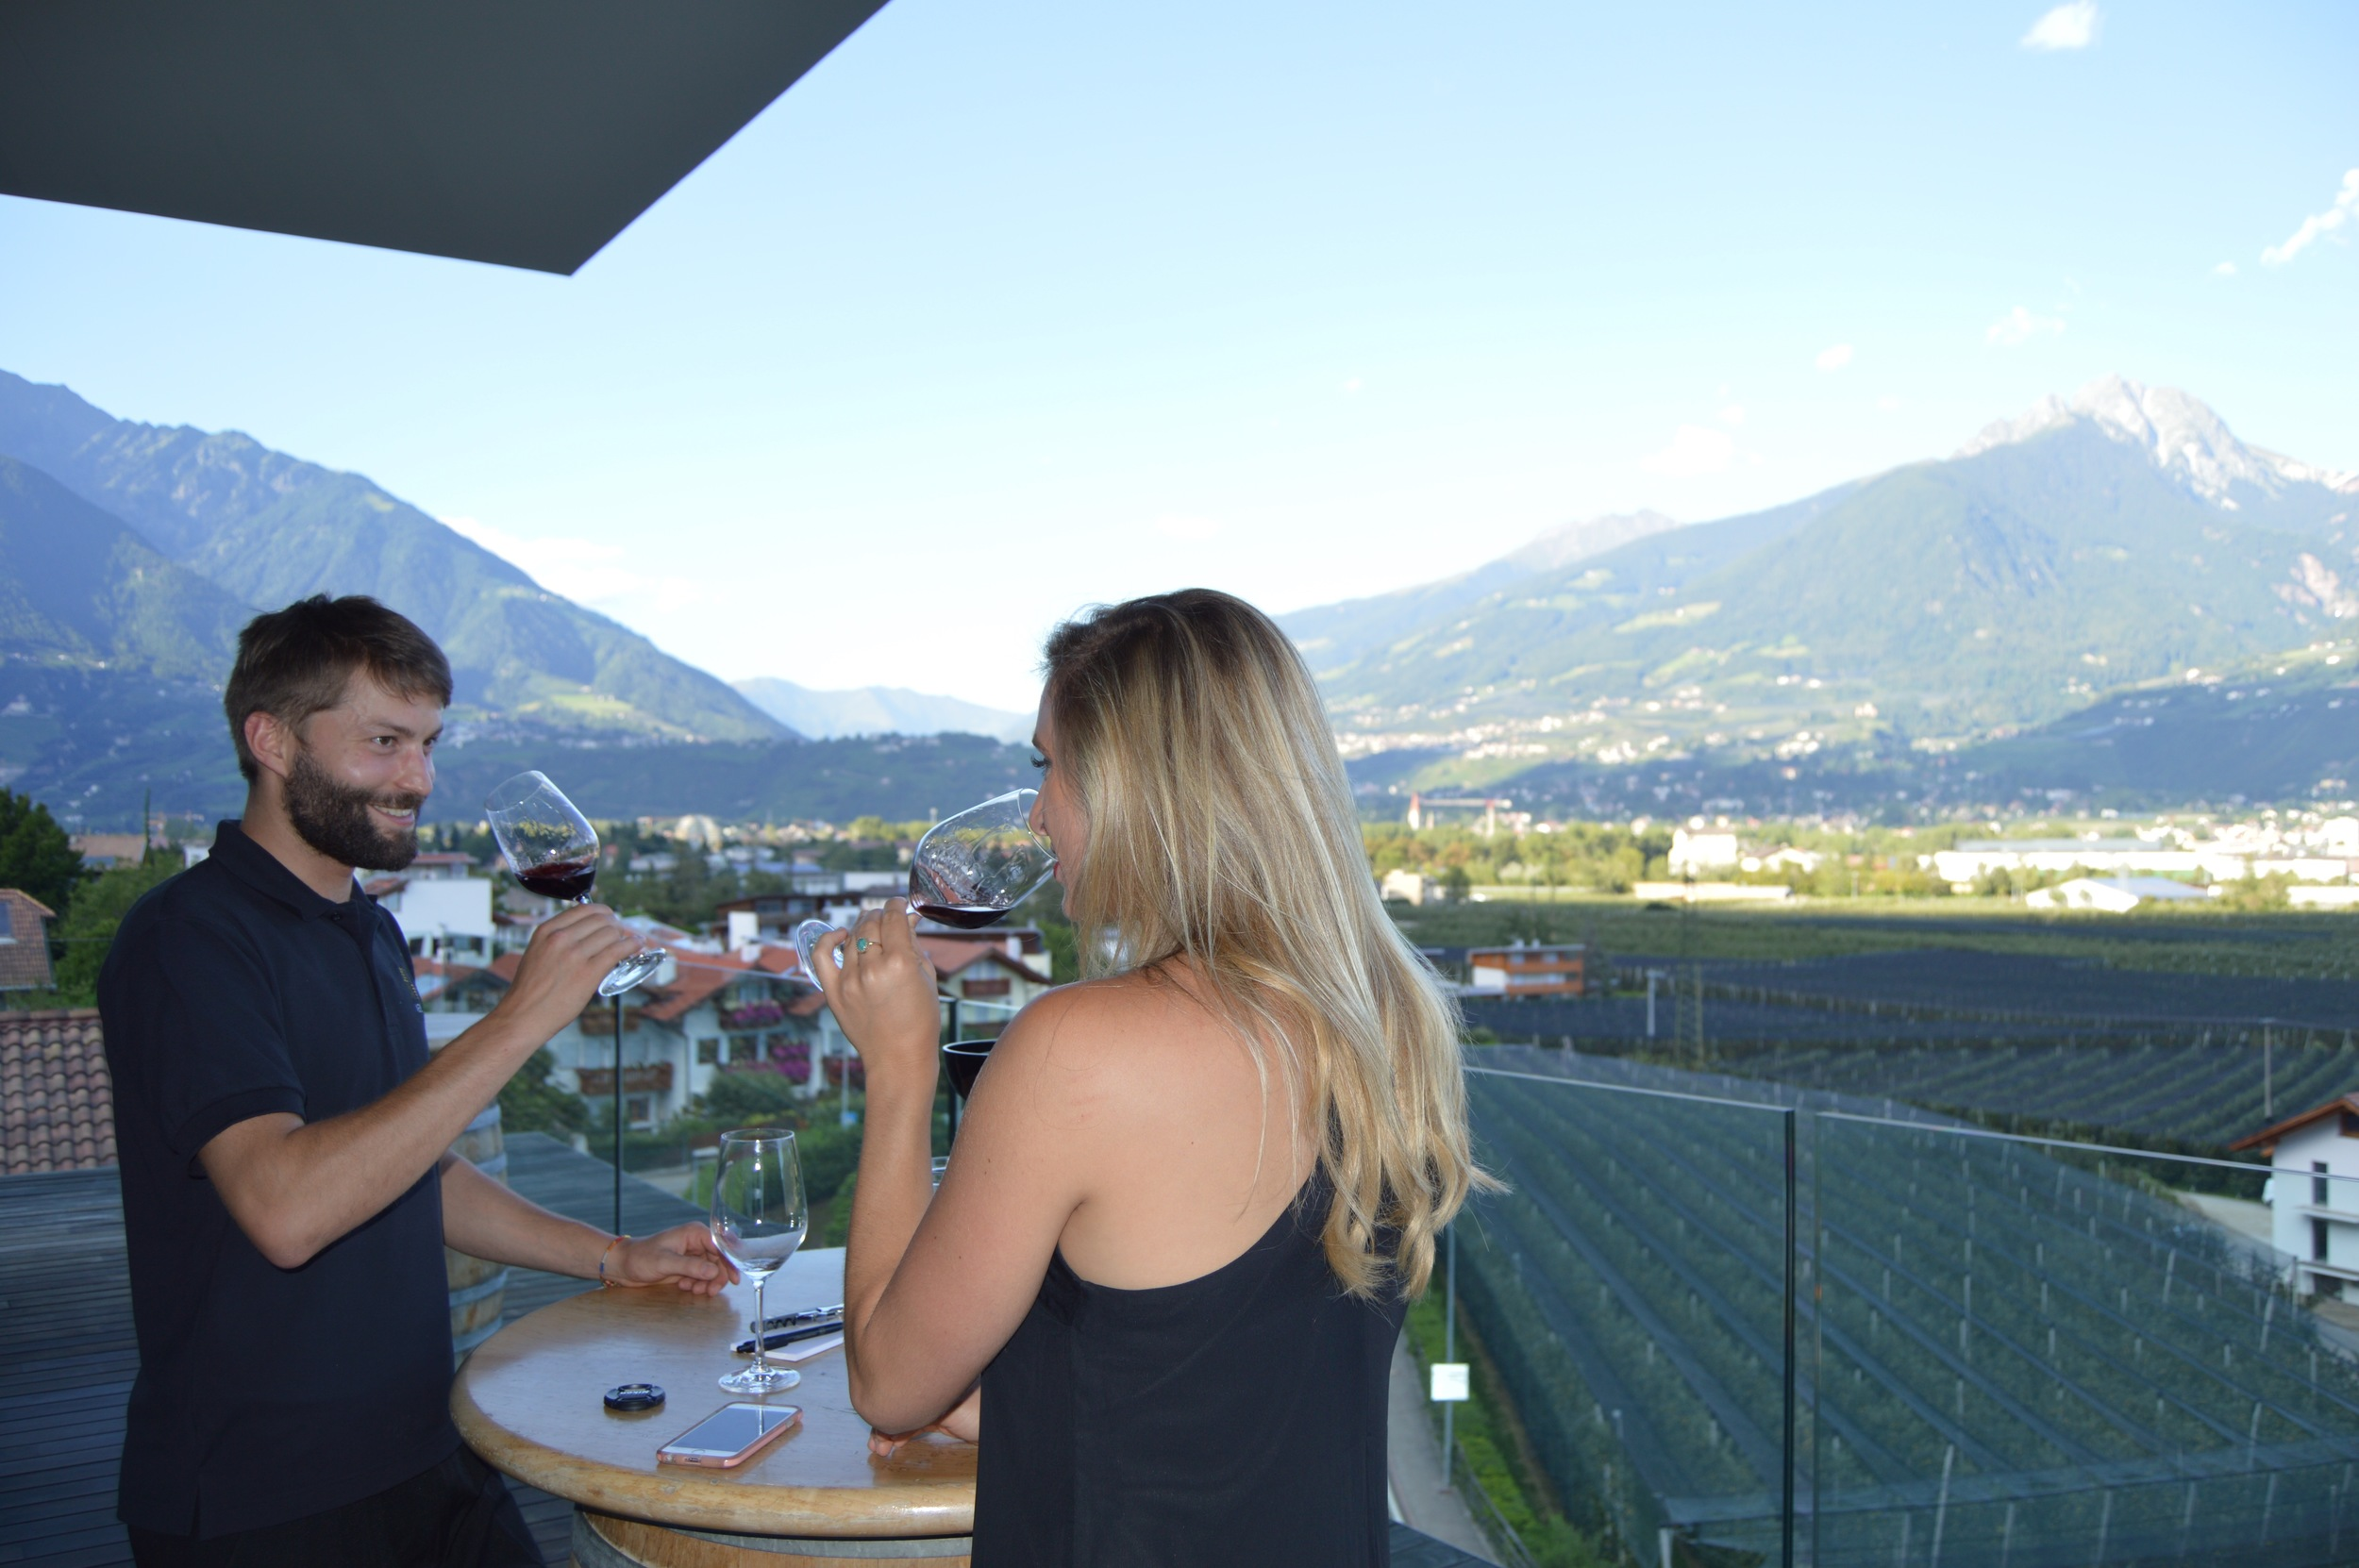 meran winery south tyrol italy